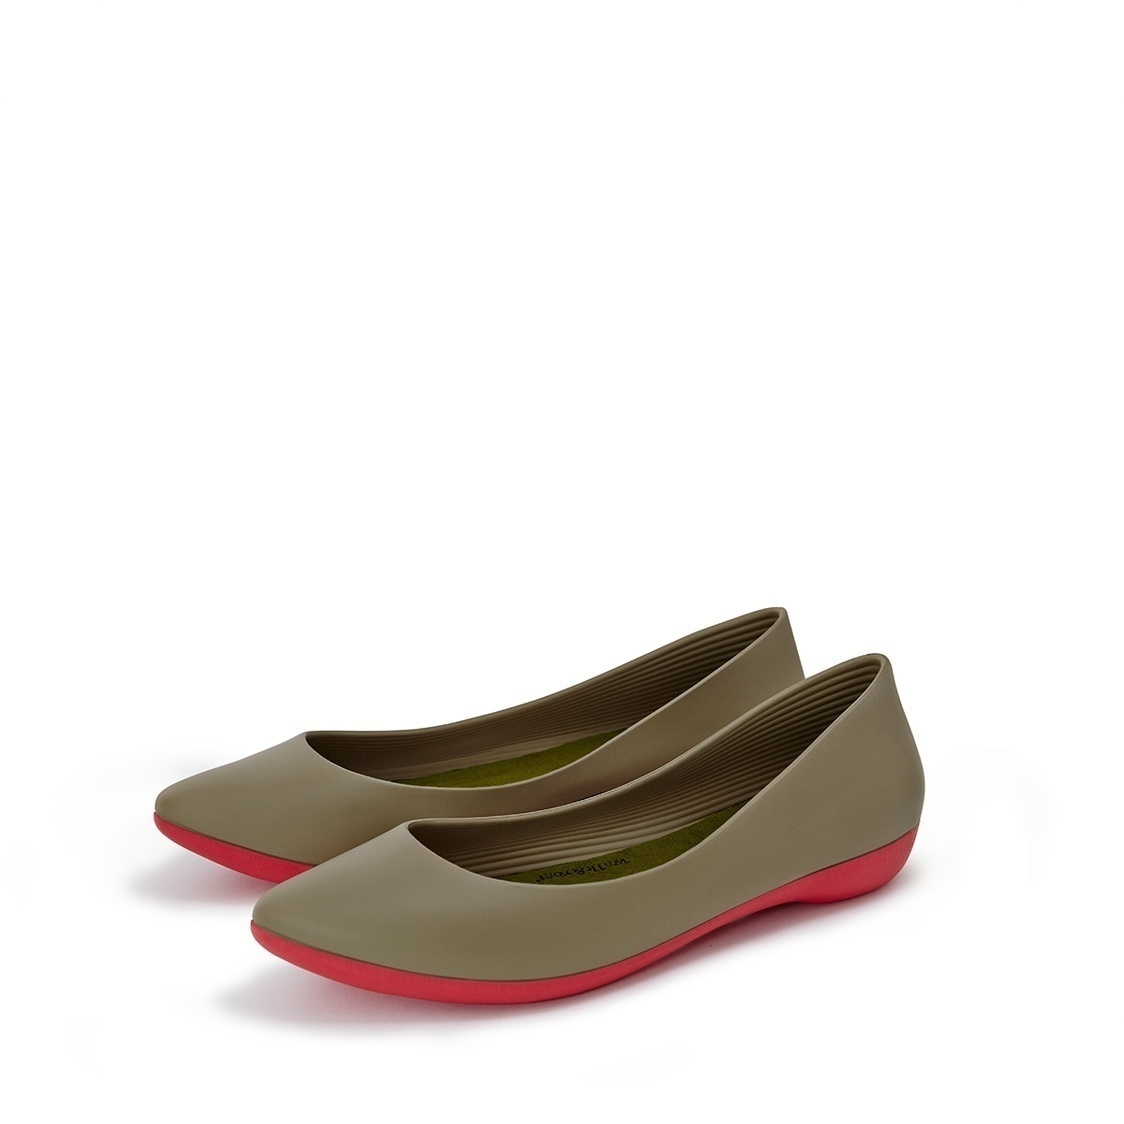 F2 Flat-Pointed Heel height 2cm Olive Green